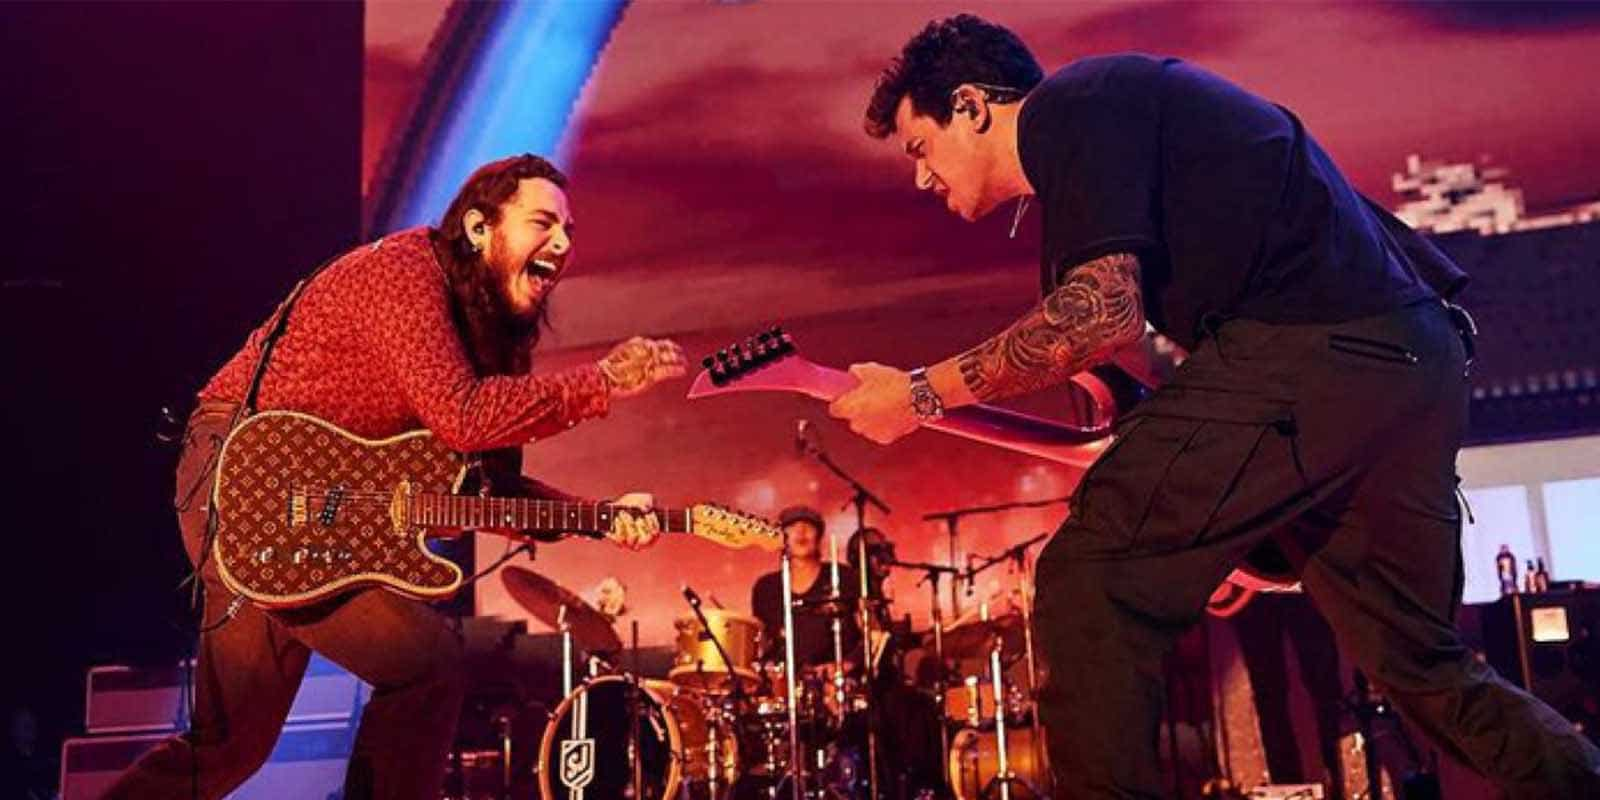 john mayer and post malone performing together on stage